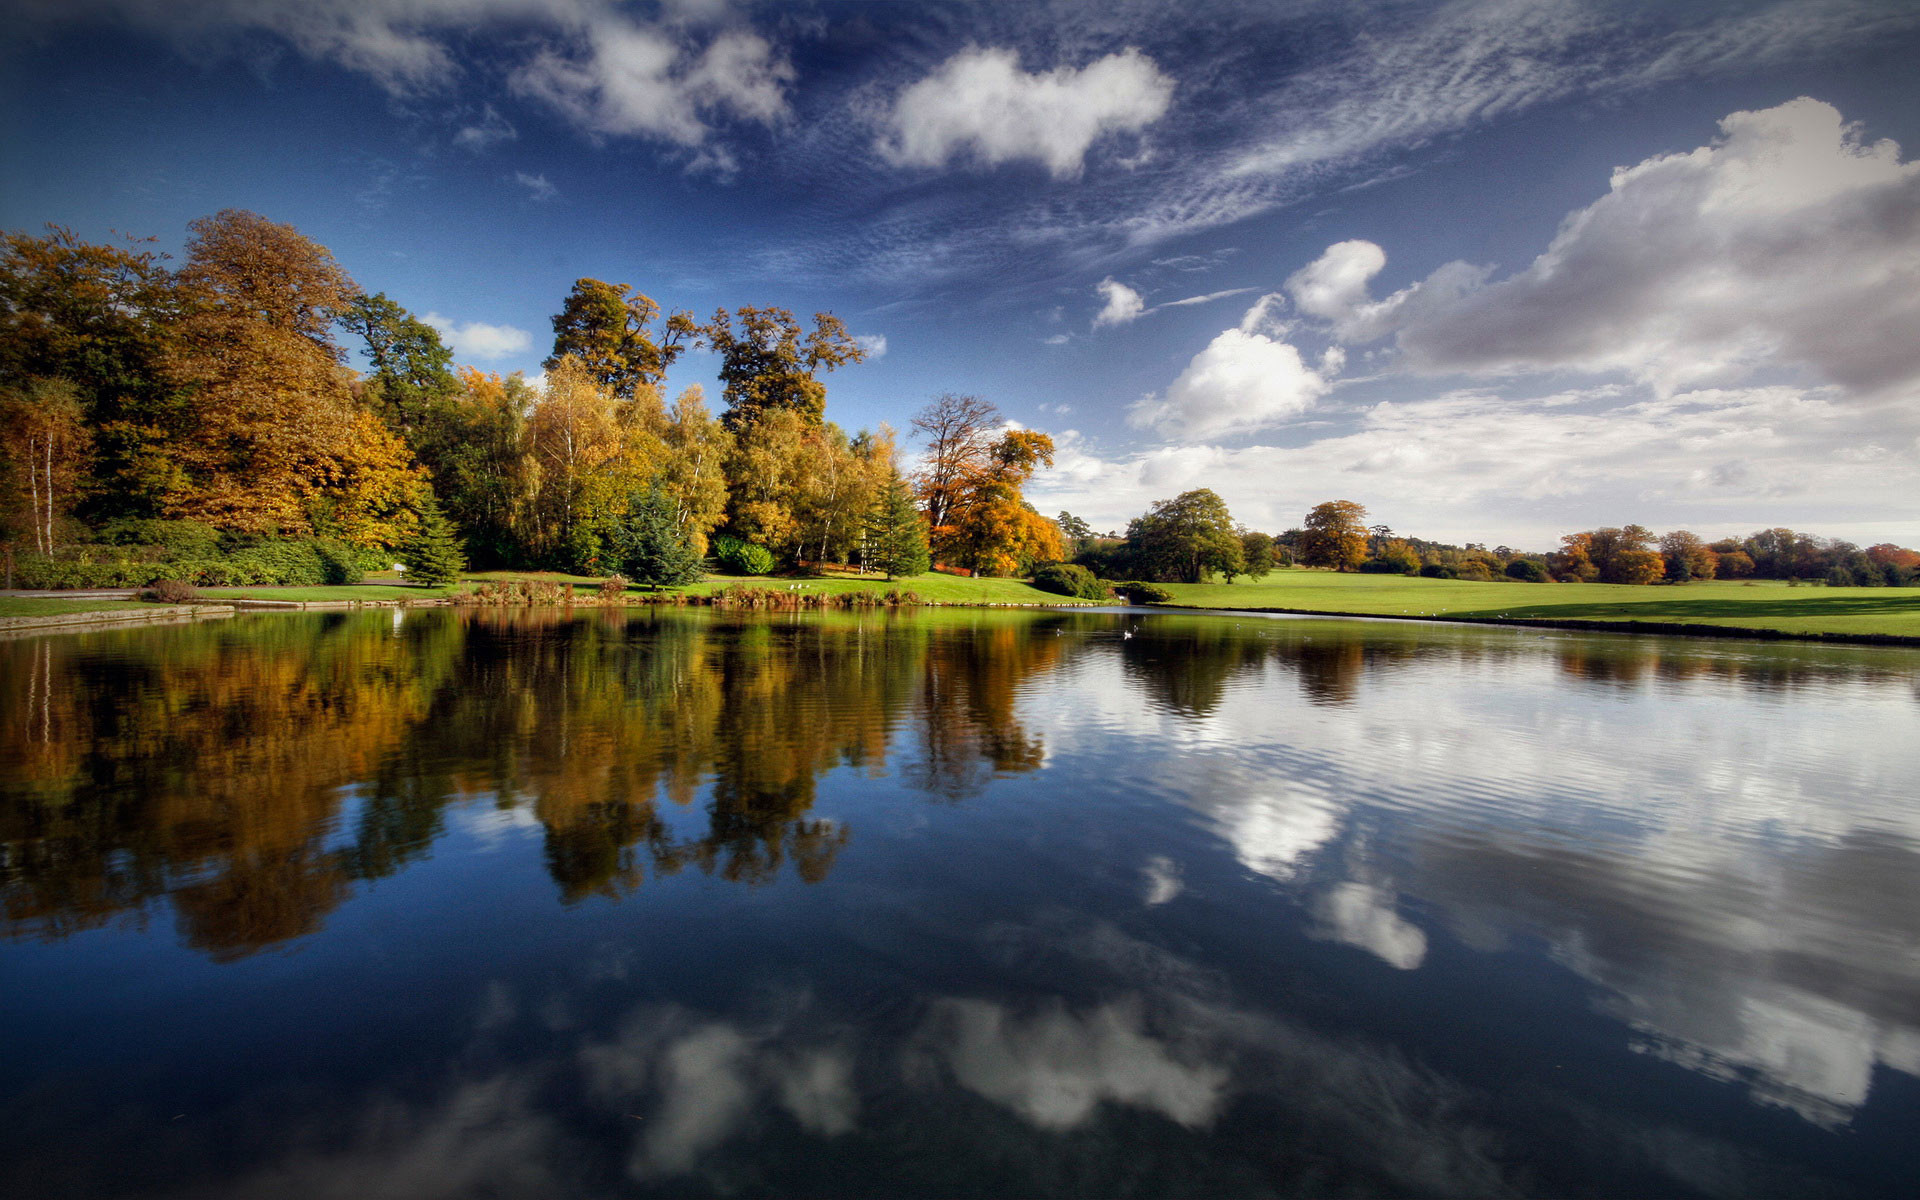 HD Quality Wallpapers: Landscapes Images For Desktop, Free .